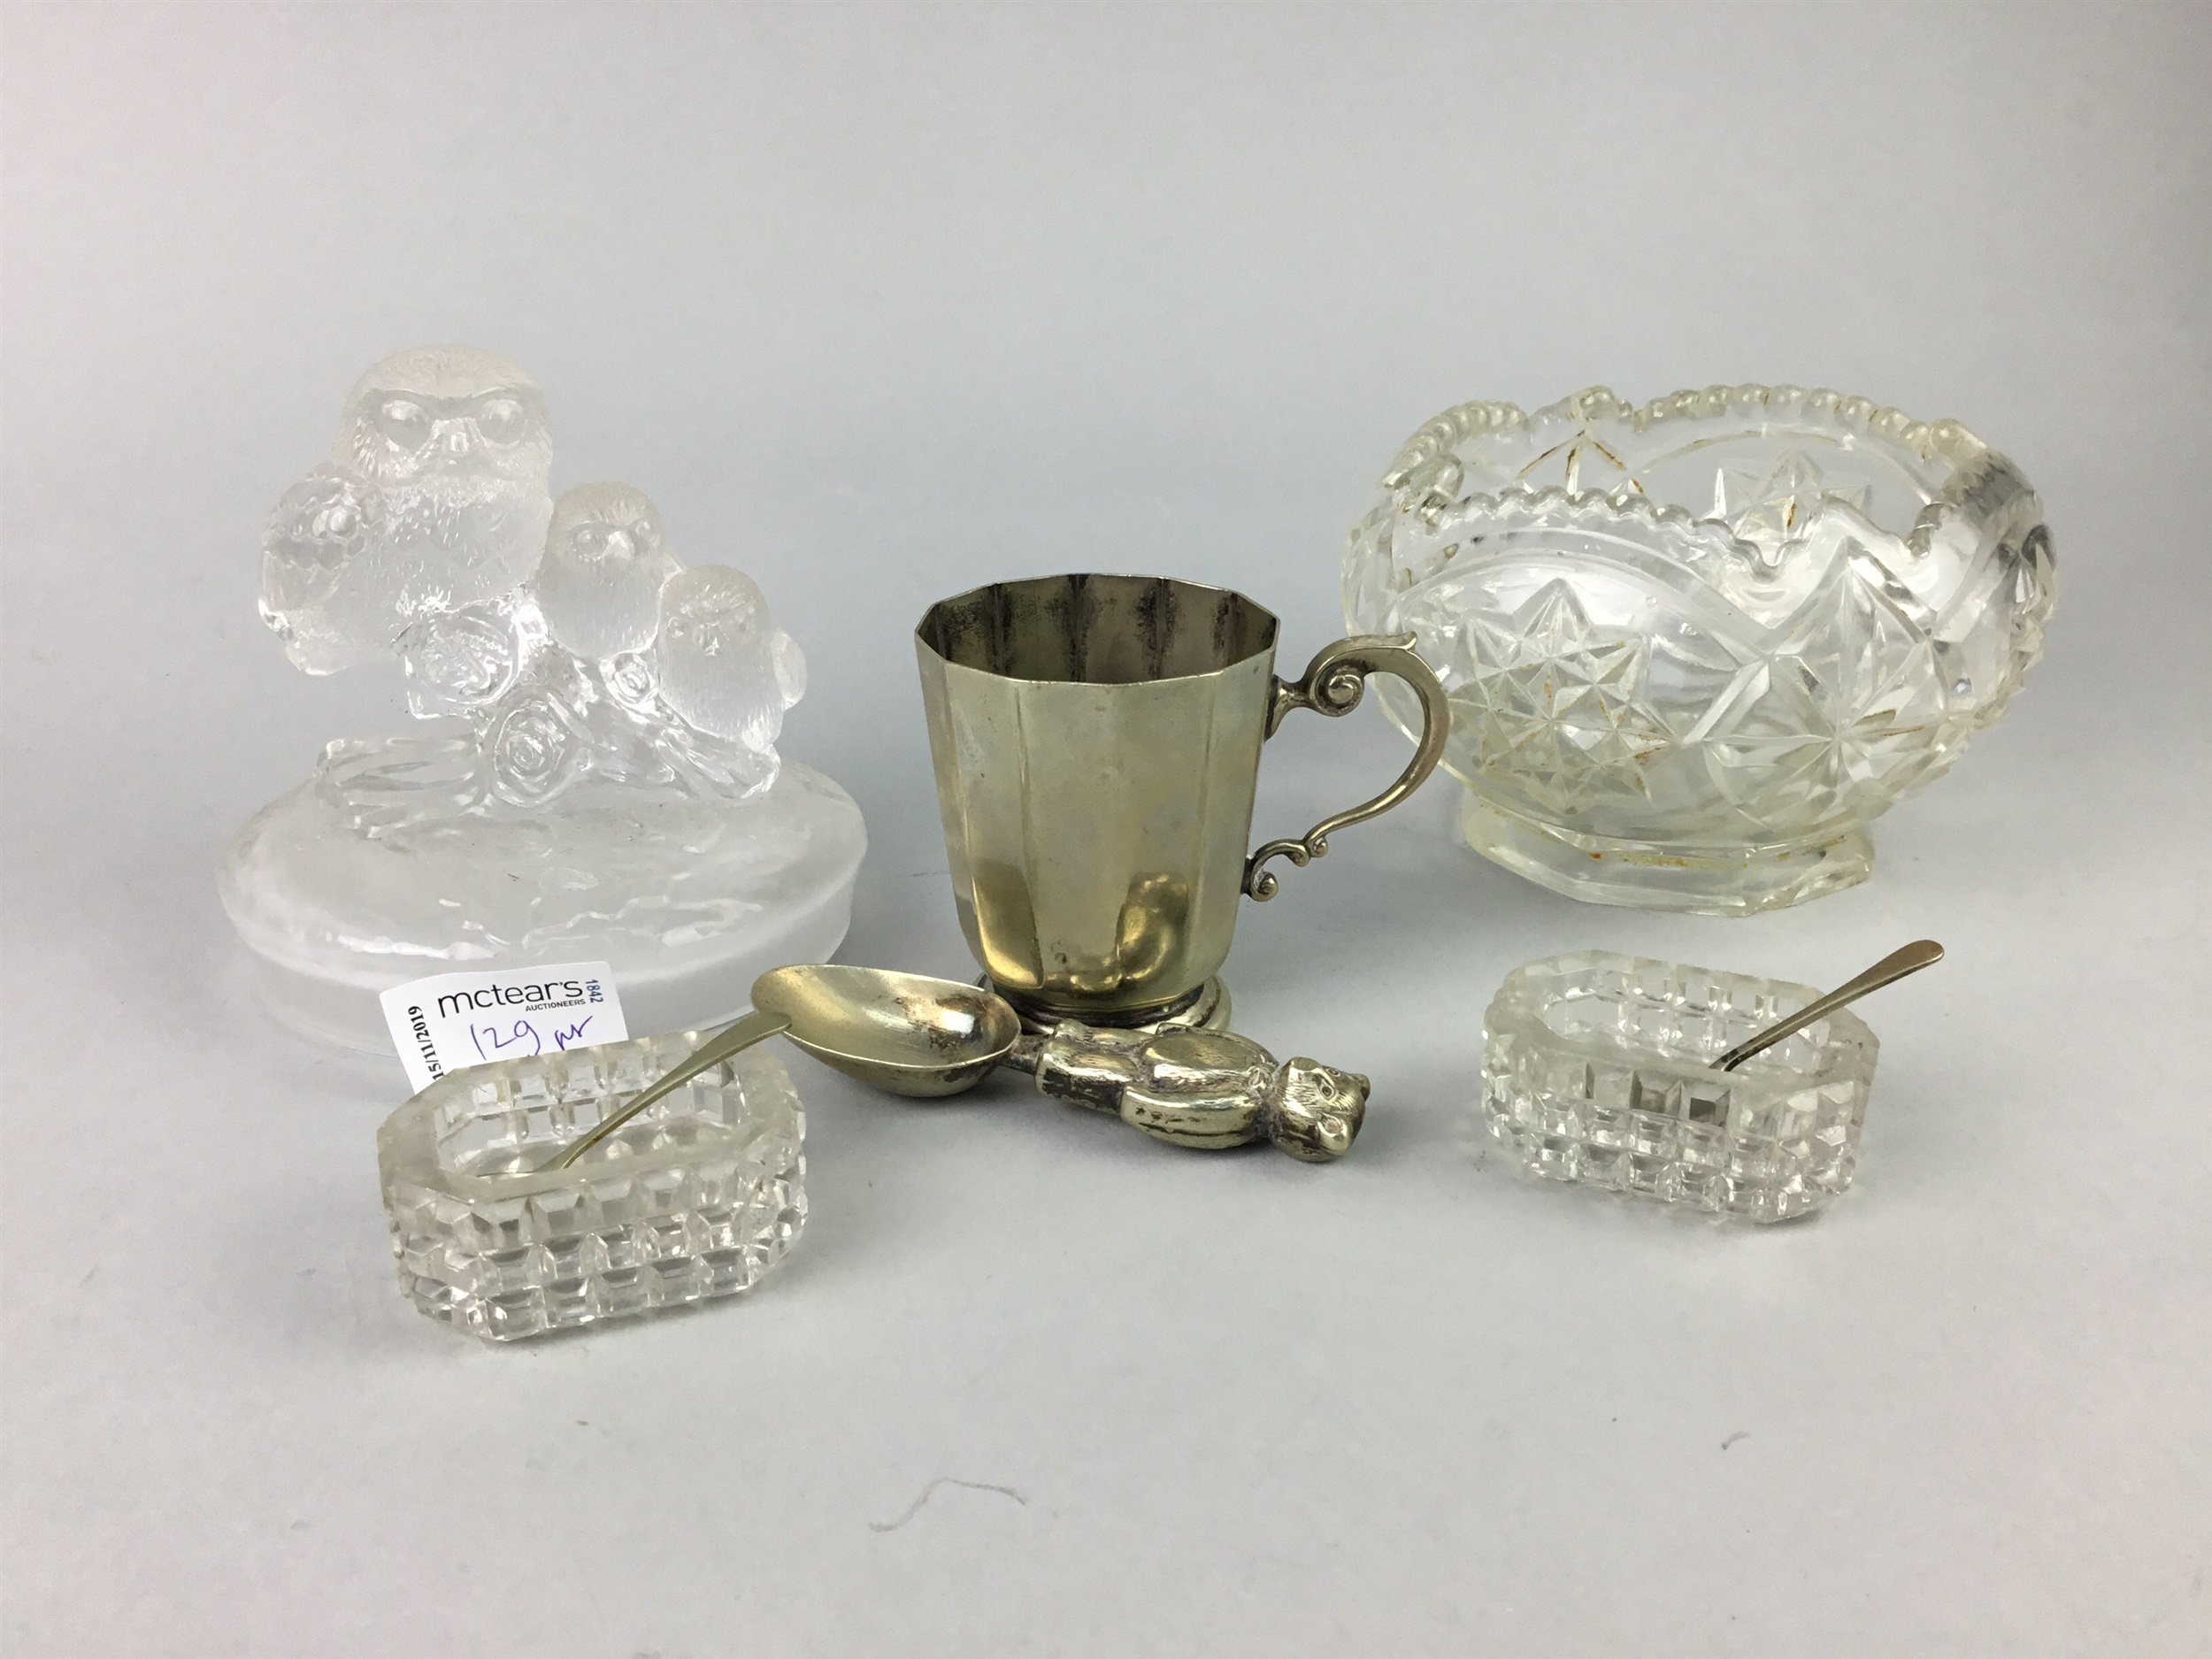 Lot 129 - A MALING DISH, A GROUP OF CERAMICS, GLASS AND COSTUME JEWELLERY